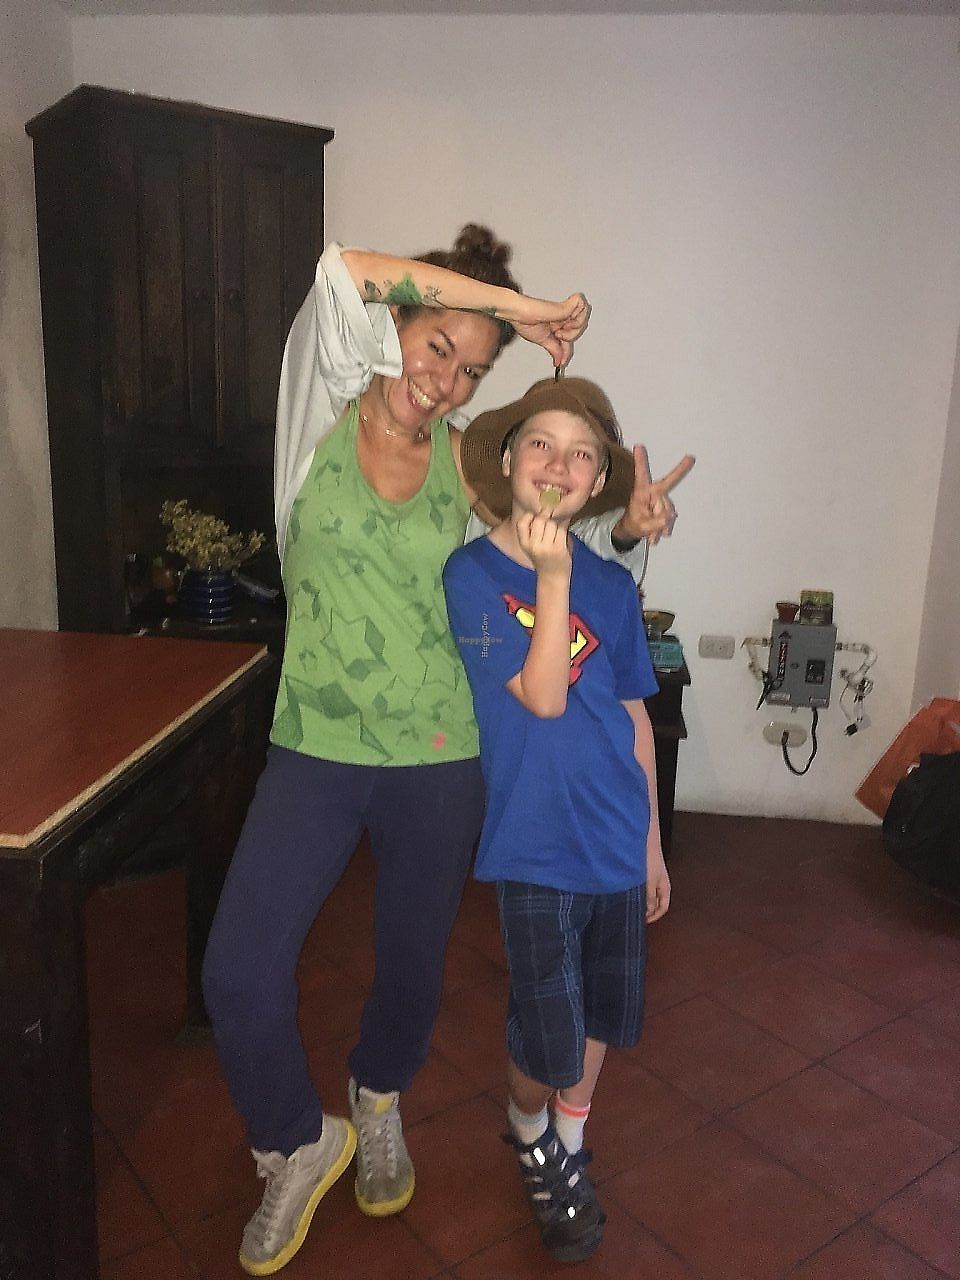 """Photo of Sat Nam  by <a href=""""/members/profile/templeclimber"""">templeclimber</a> <br/>The owner Karla with my grandson Henry.  <br/> February 14, 2018  - <a href='/contact/abuse/image/93990/359868'>Report</a>"""